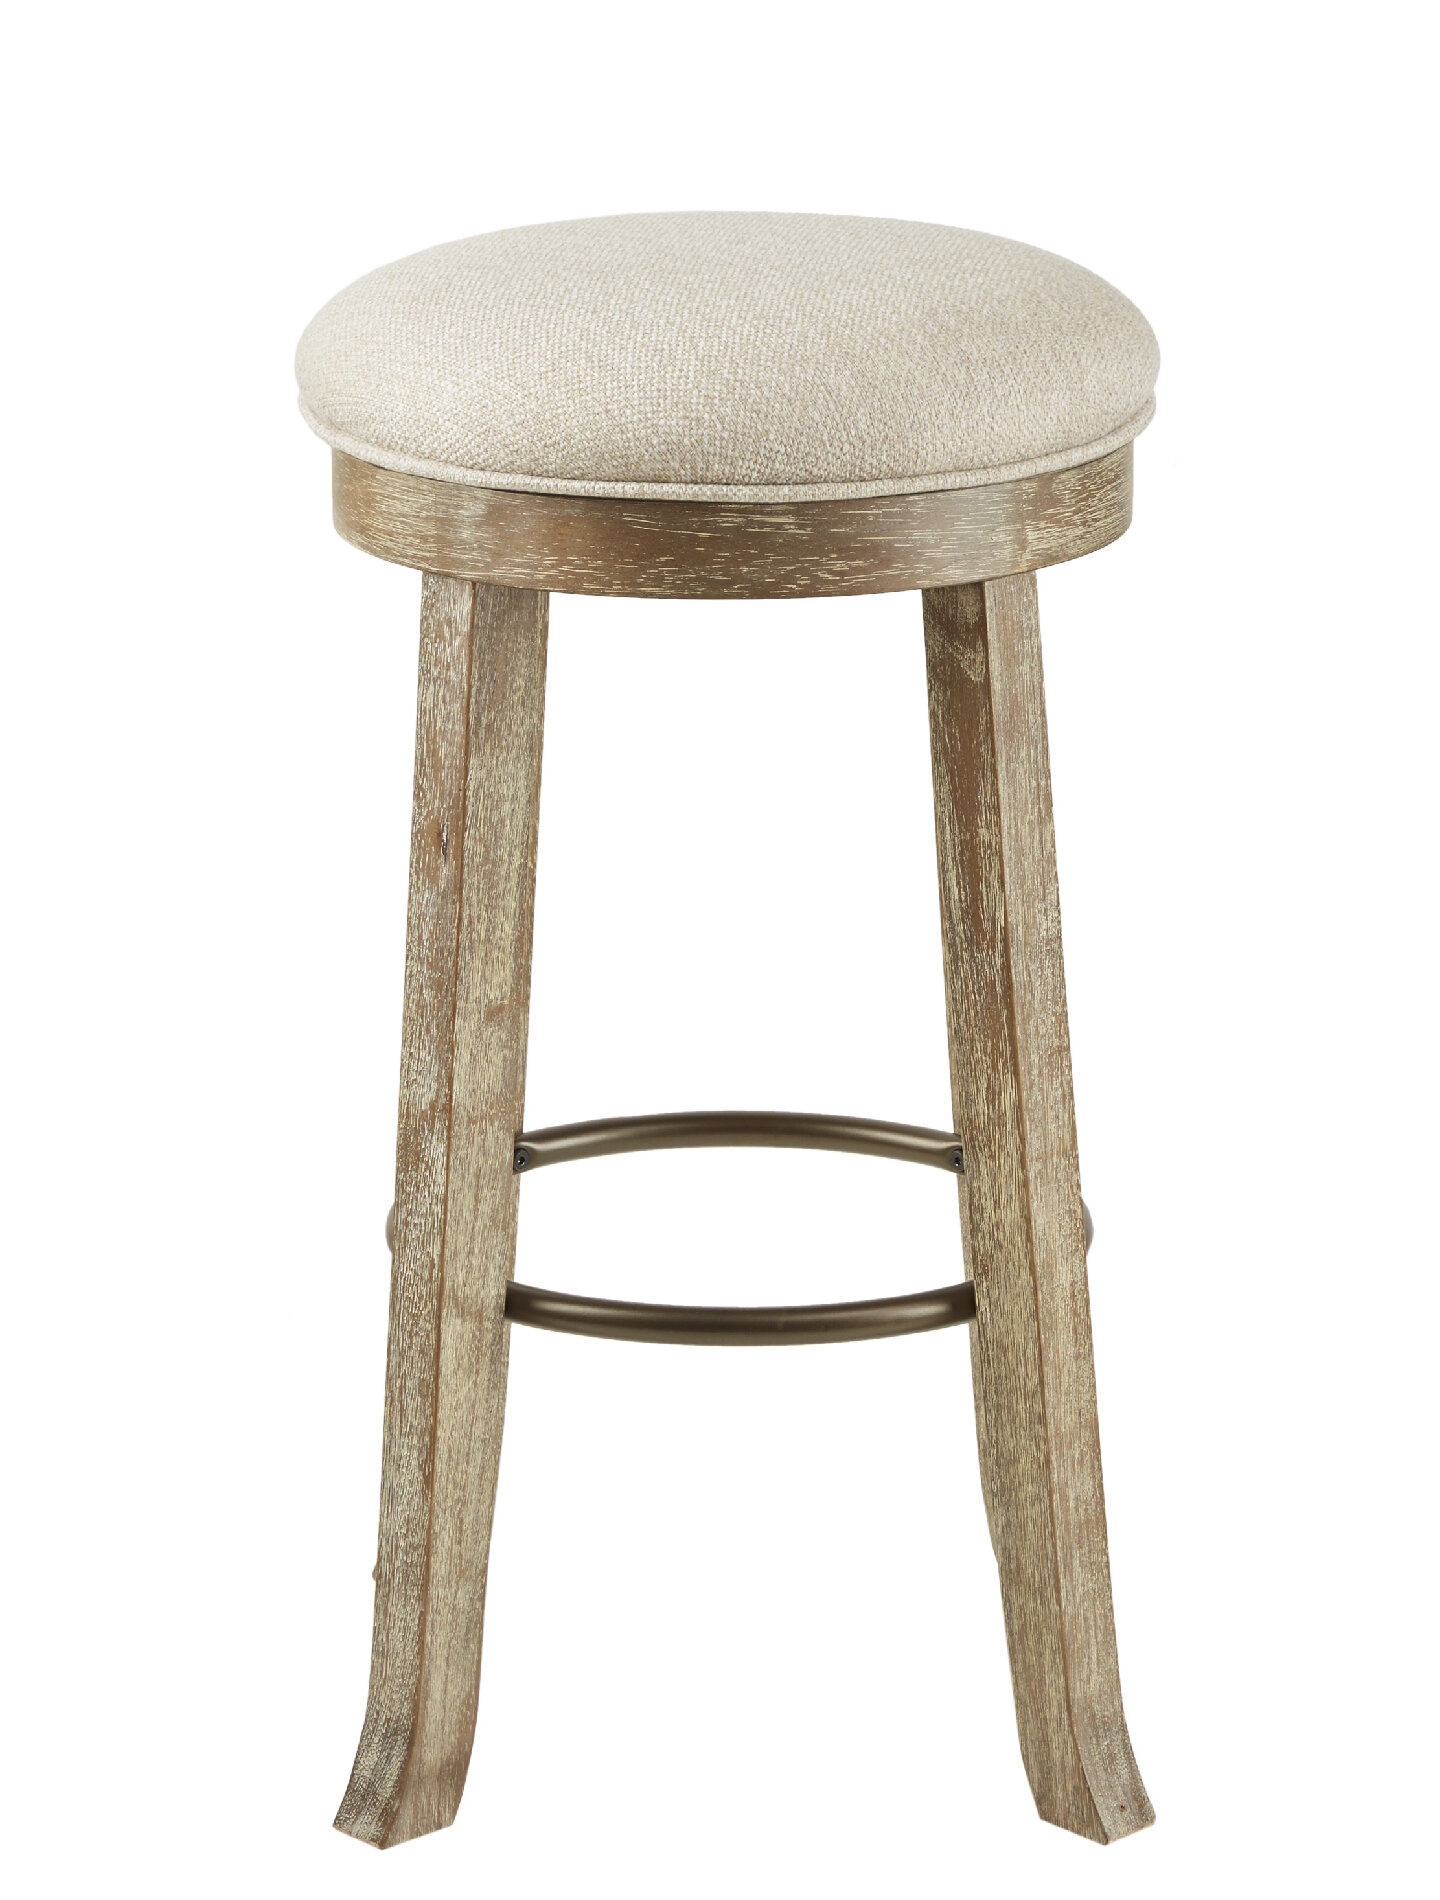 Union Rustic Madiun 30 Backless Swivel Bar Stool Wayfair